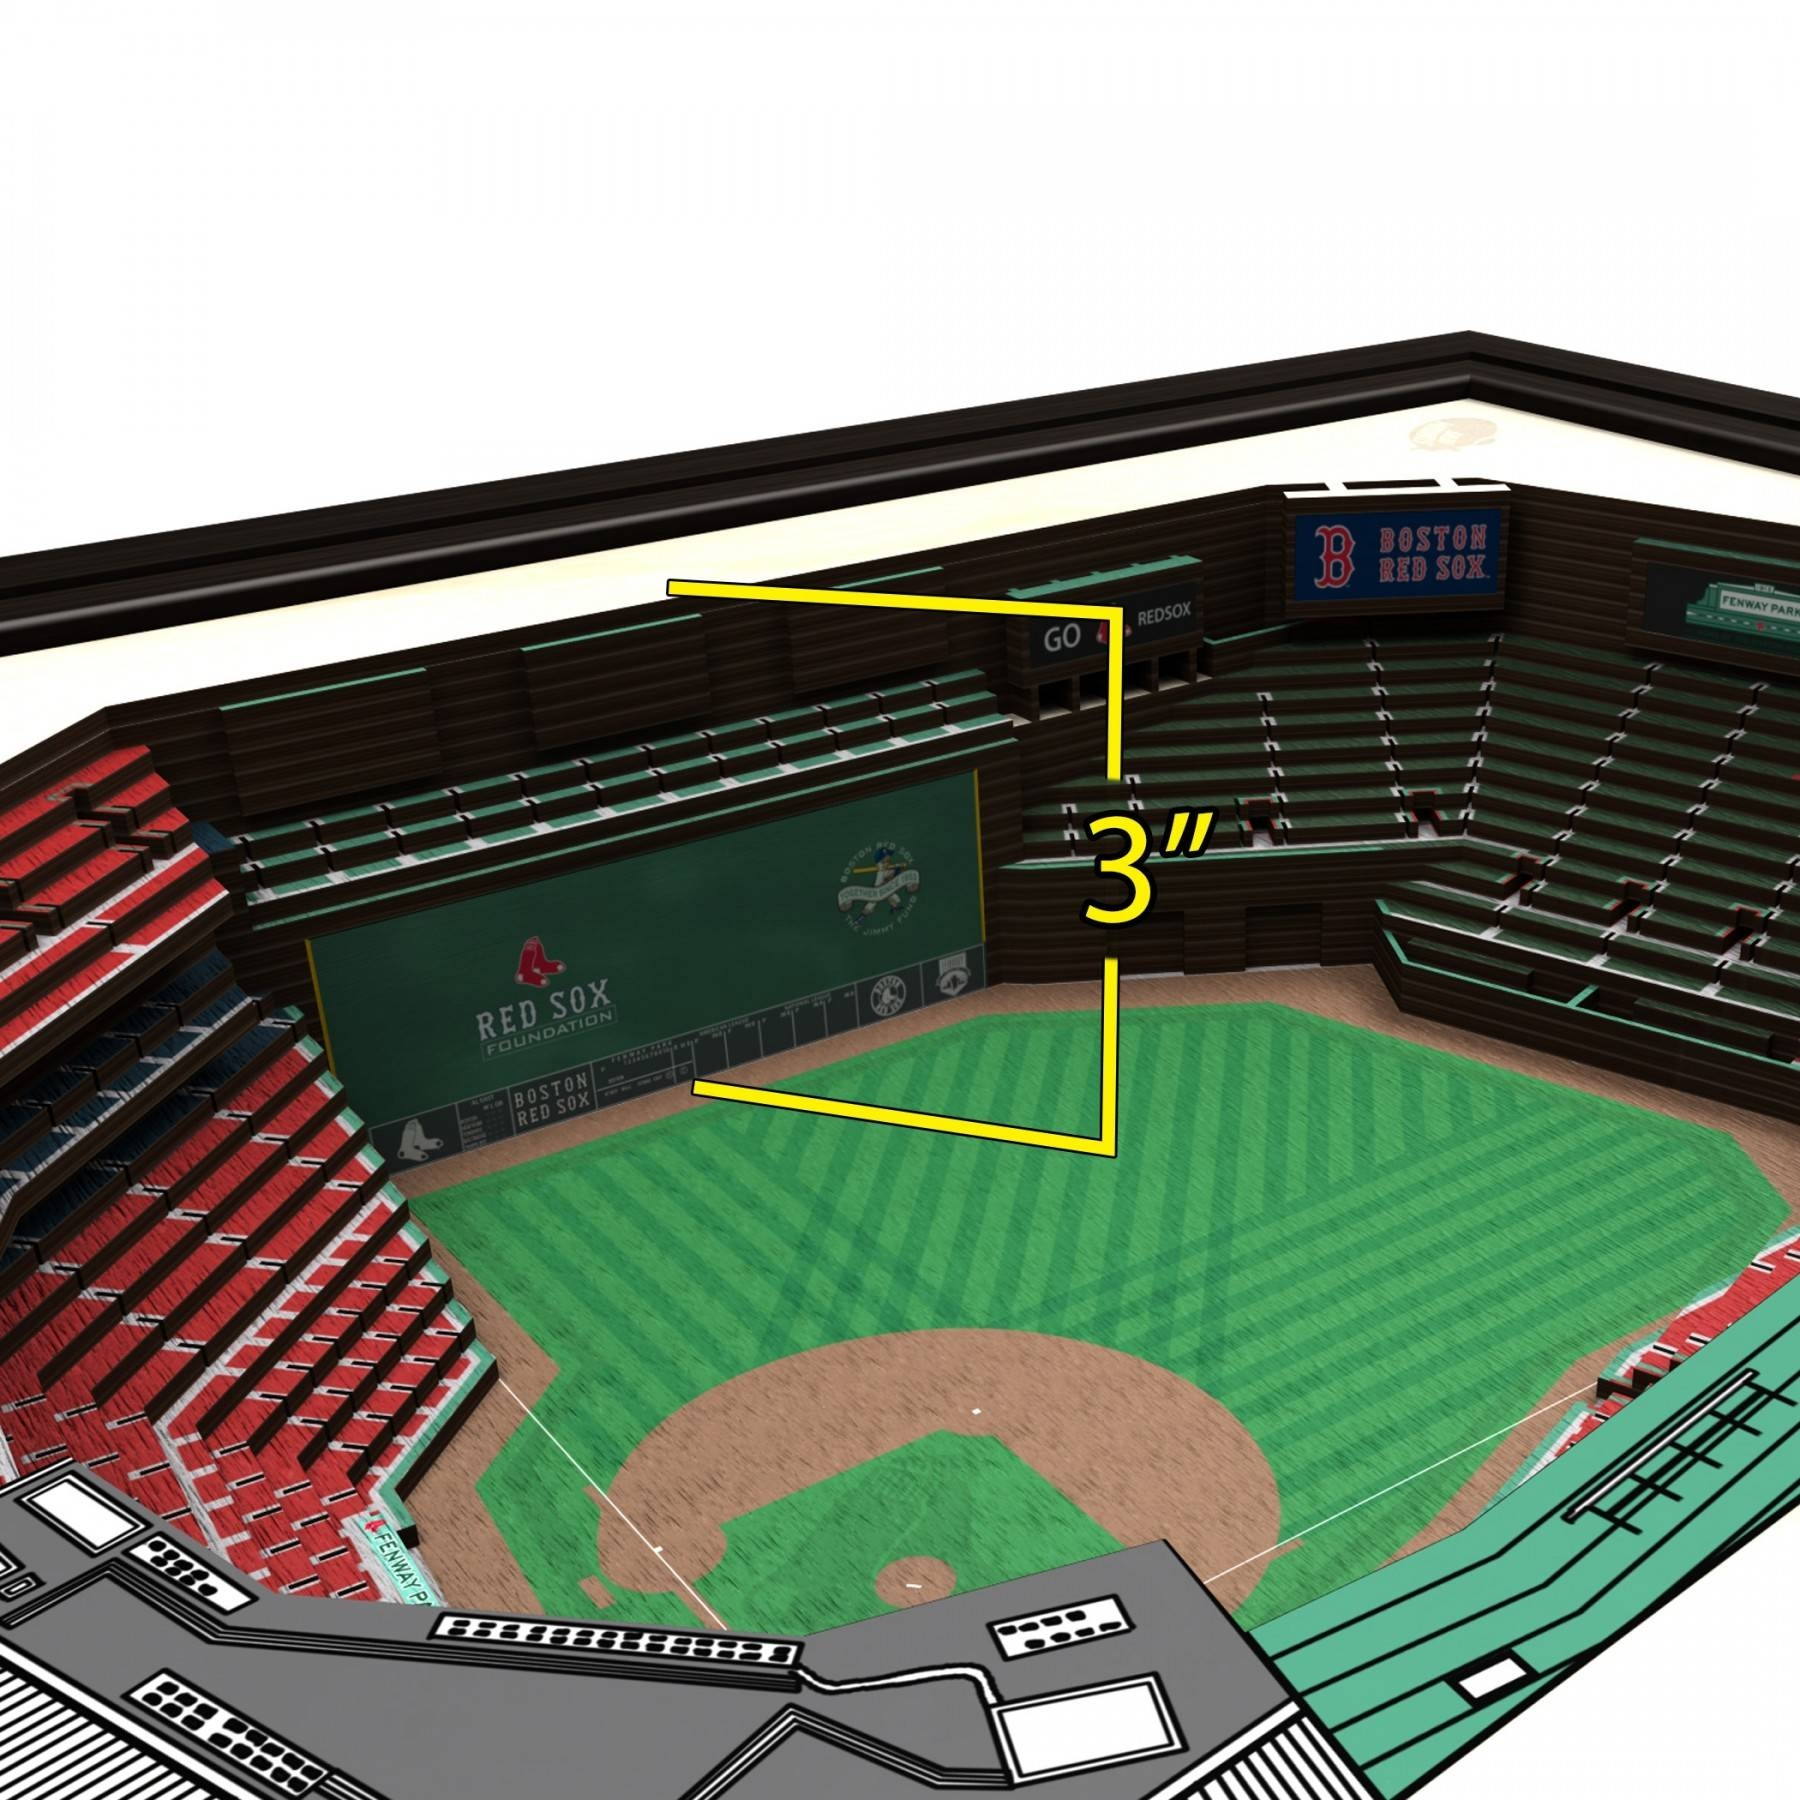 Boston Red Sox Stadiumview Wall Art – Fenway Park 3 D Reproduction Within Best And Newest Boston Red Sox Wall Art (View 14 of 25)